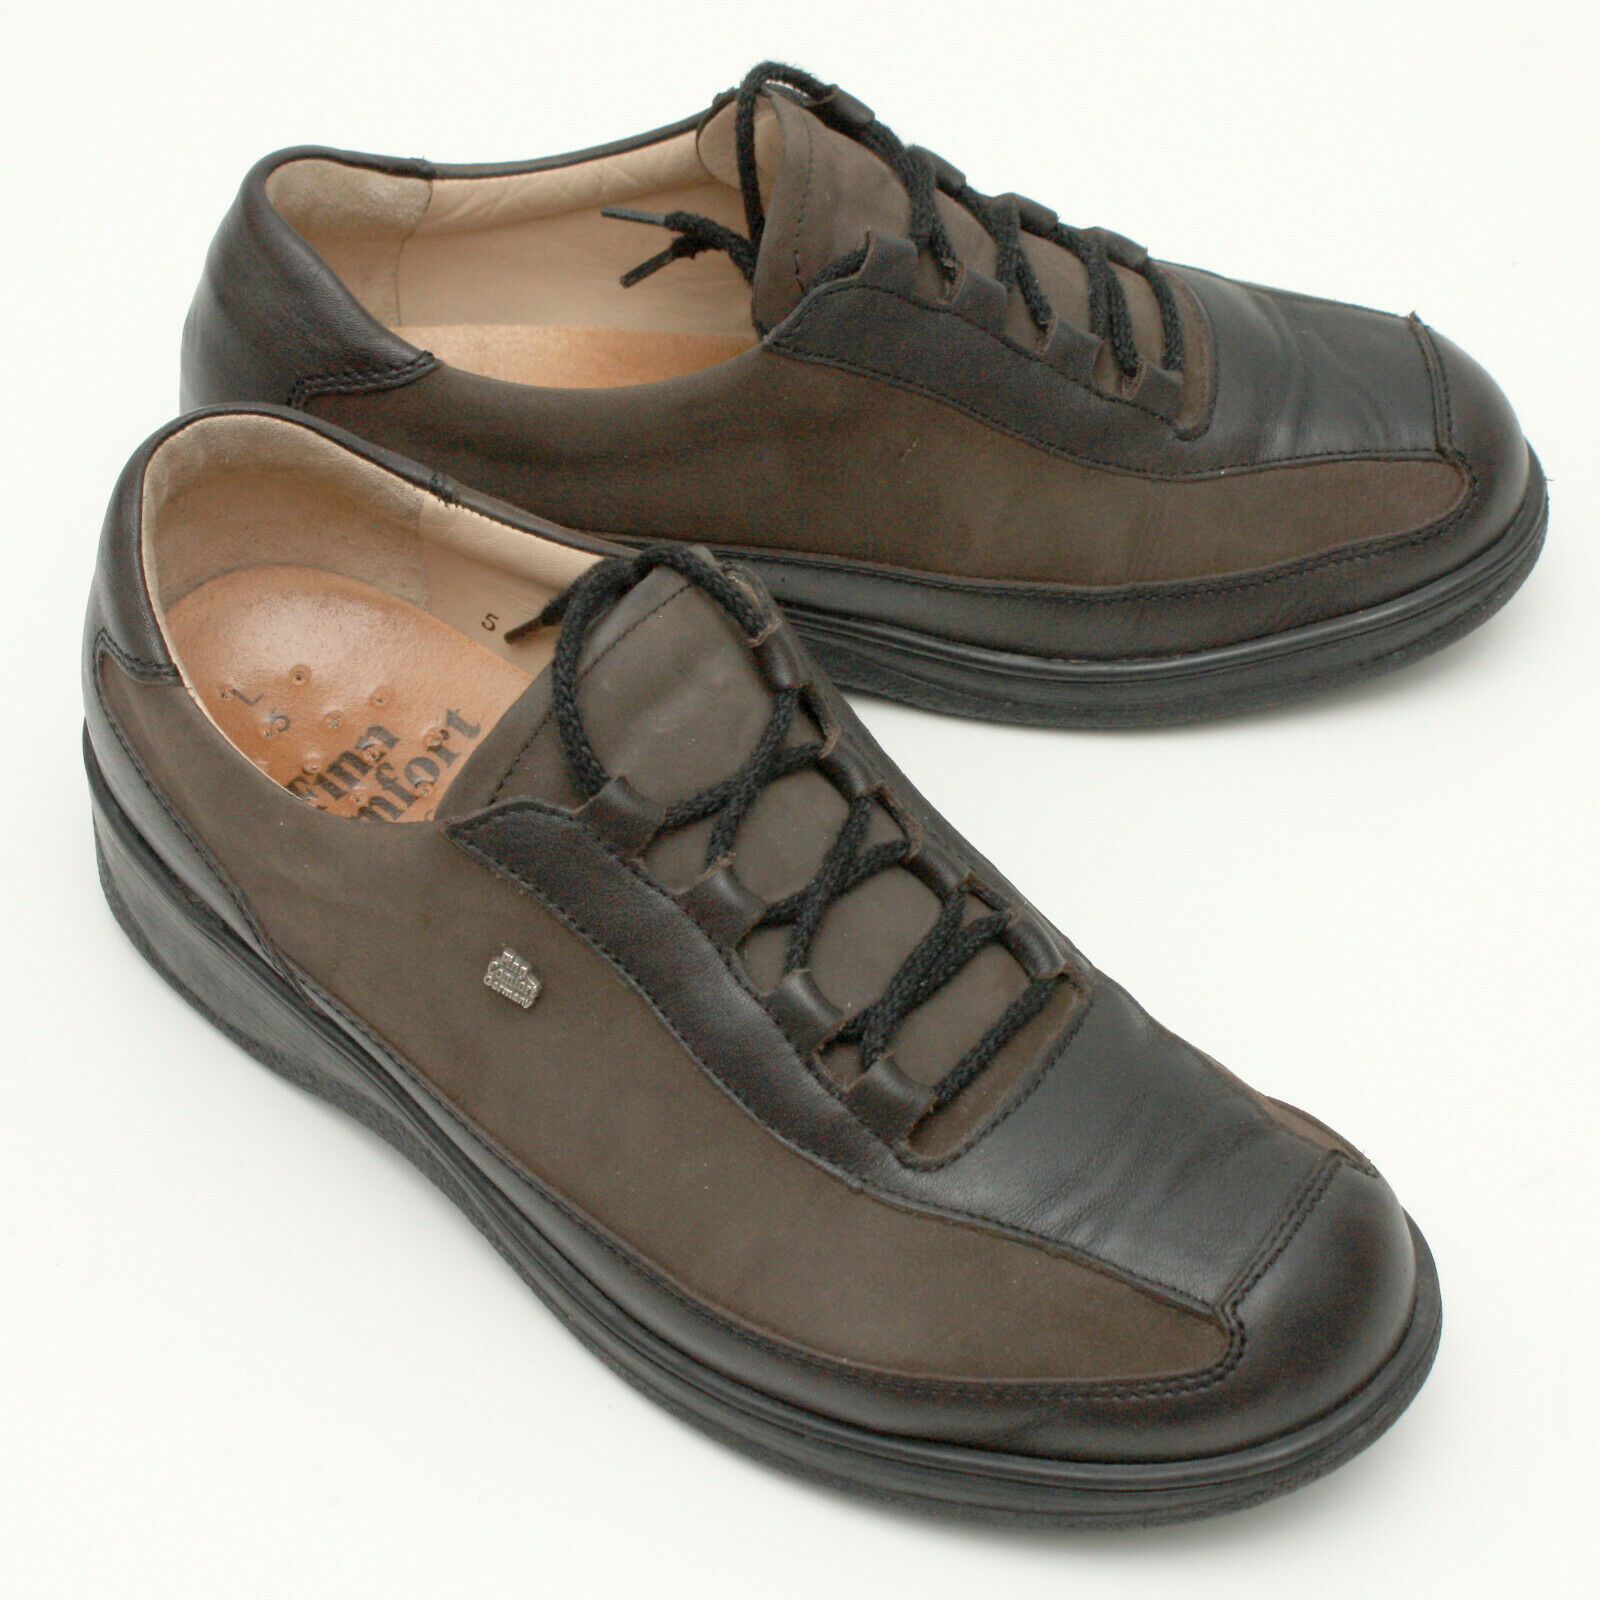 Finn Comfort Women's Casual Oxfords Shoes Brown Leather/Dark Olive Nubuck UK 5